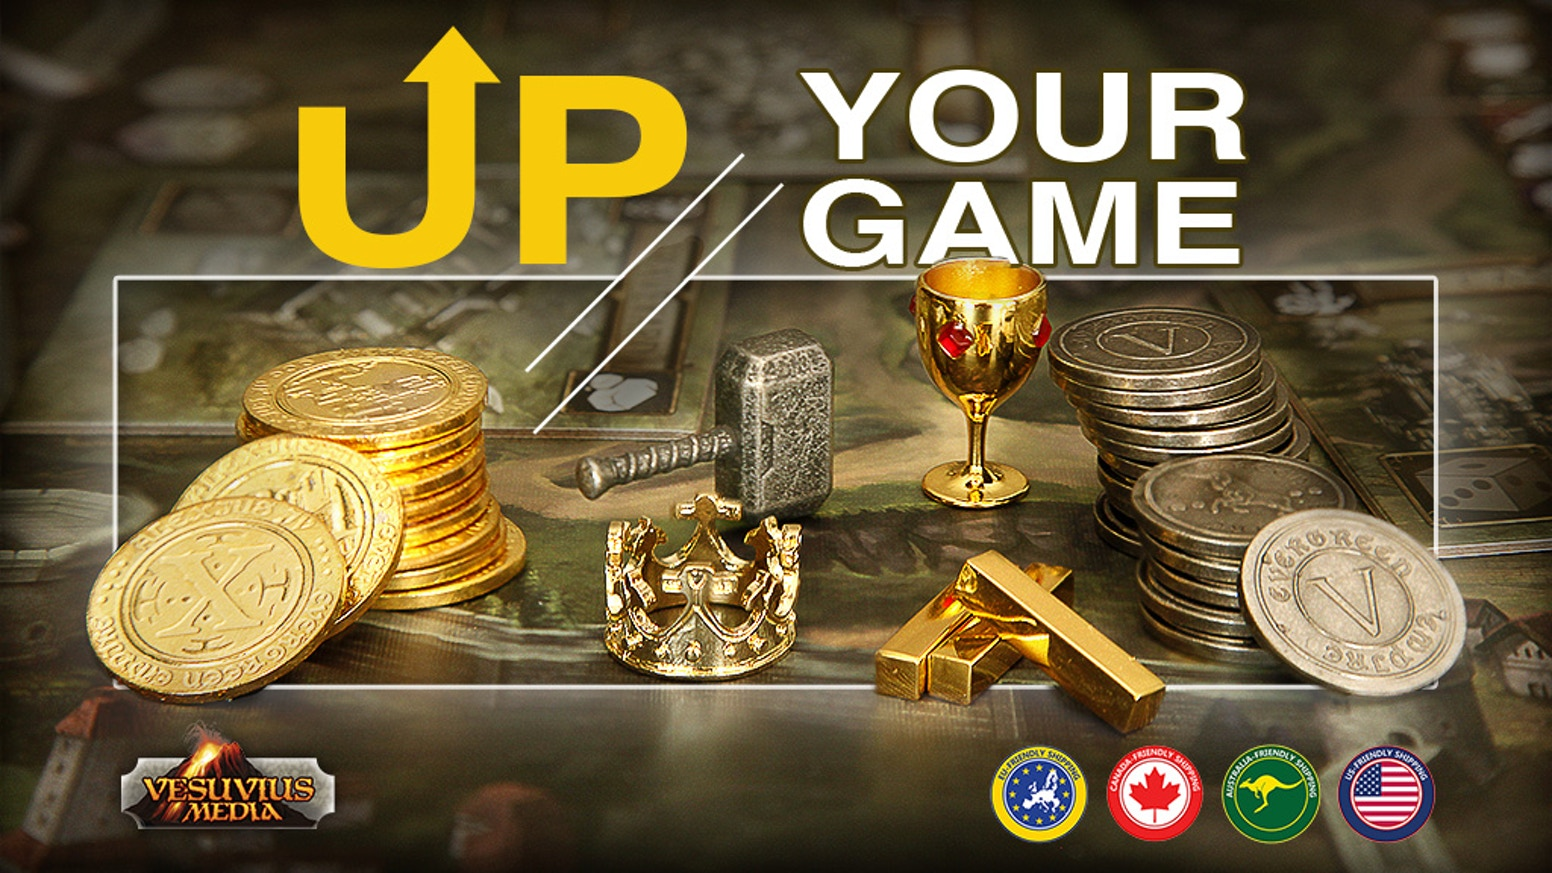 Upgrade your gaming experience with cool tokens and components.